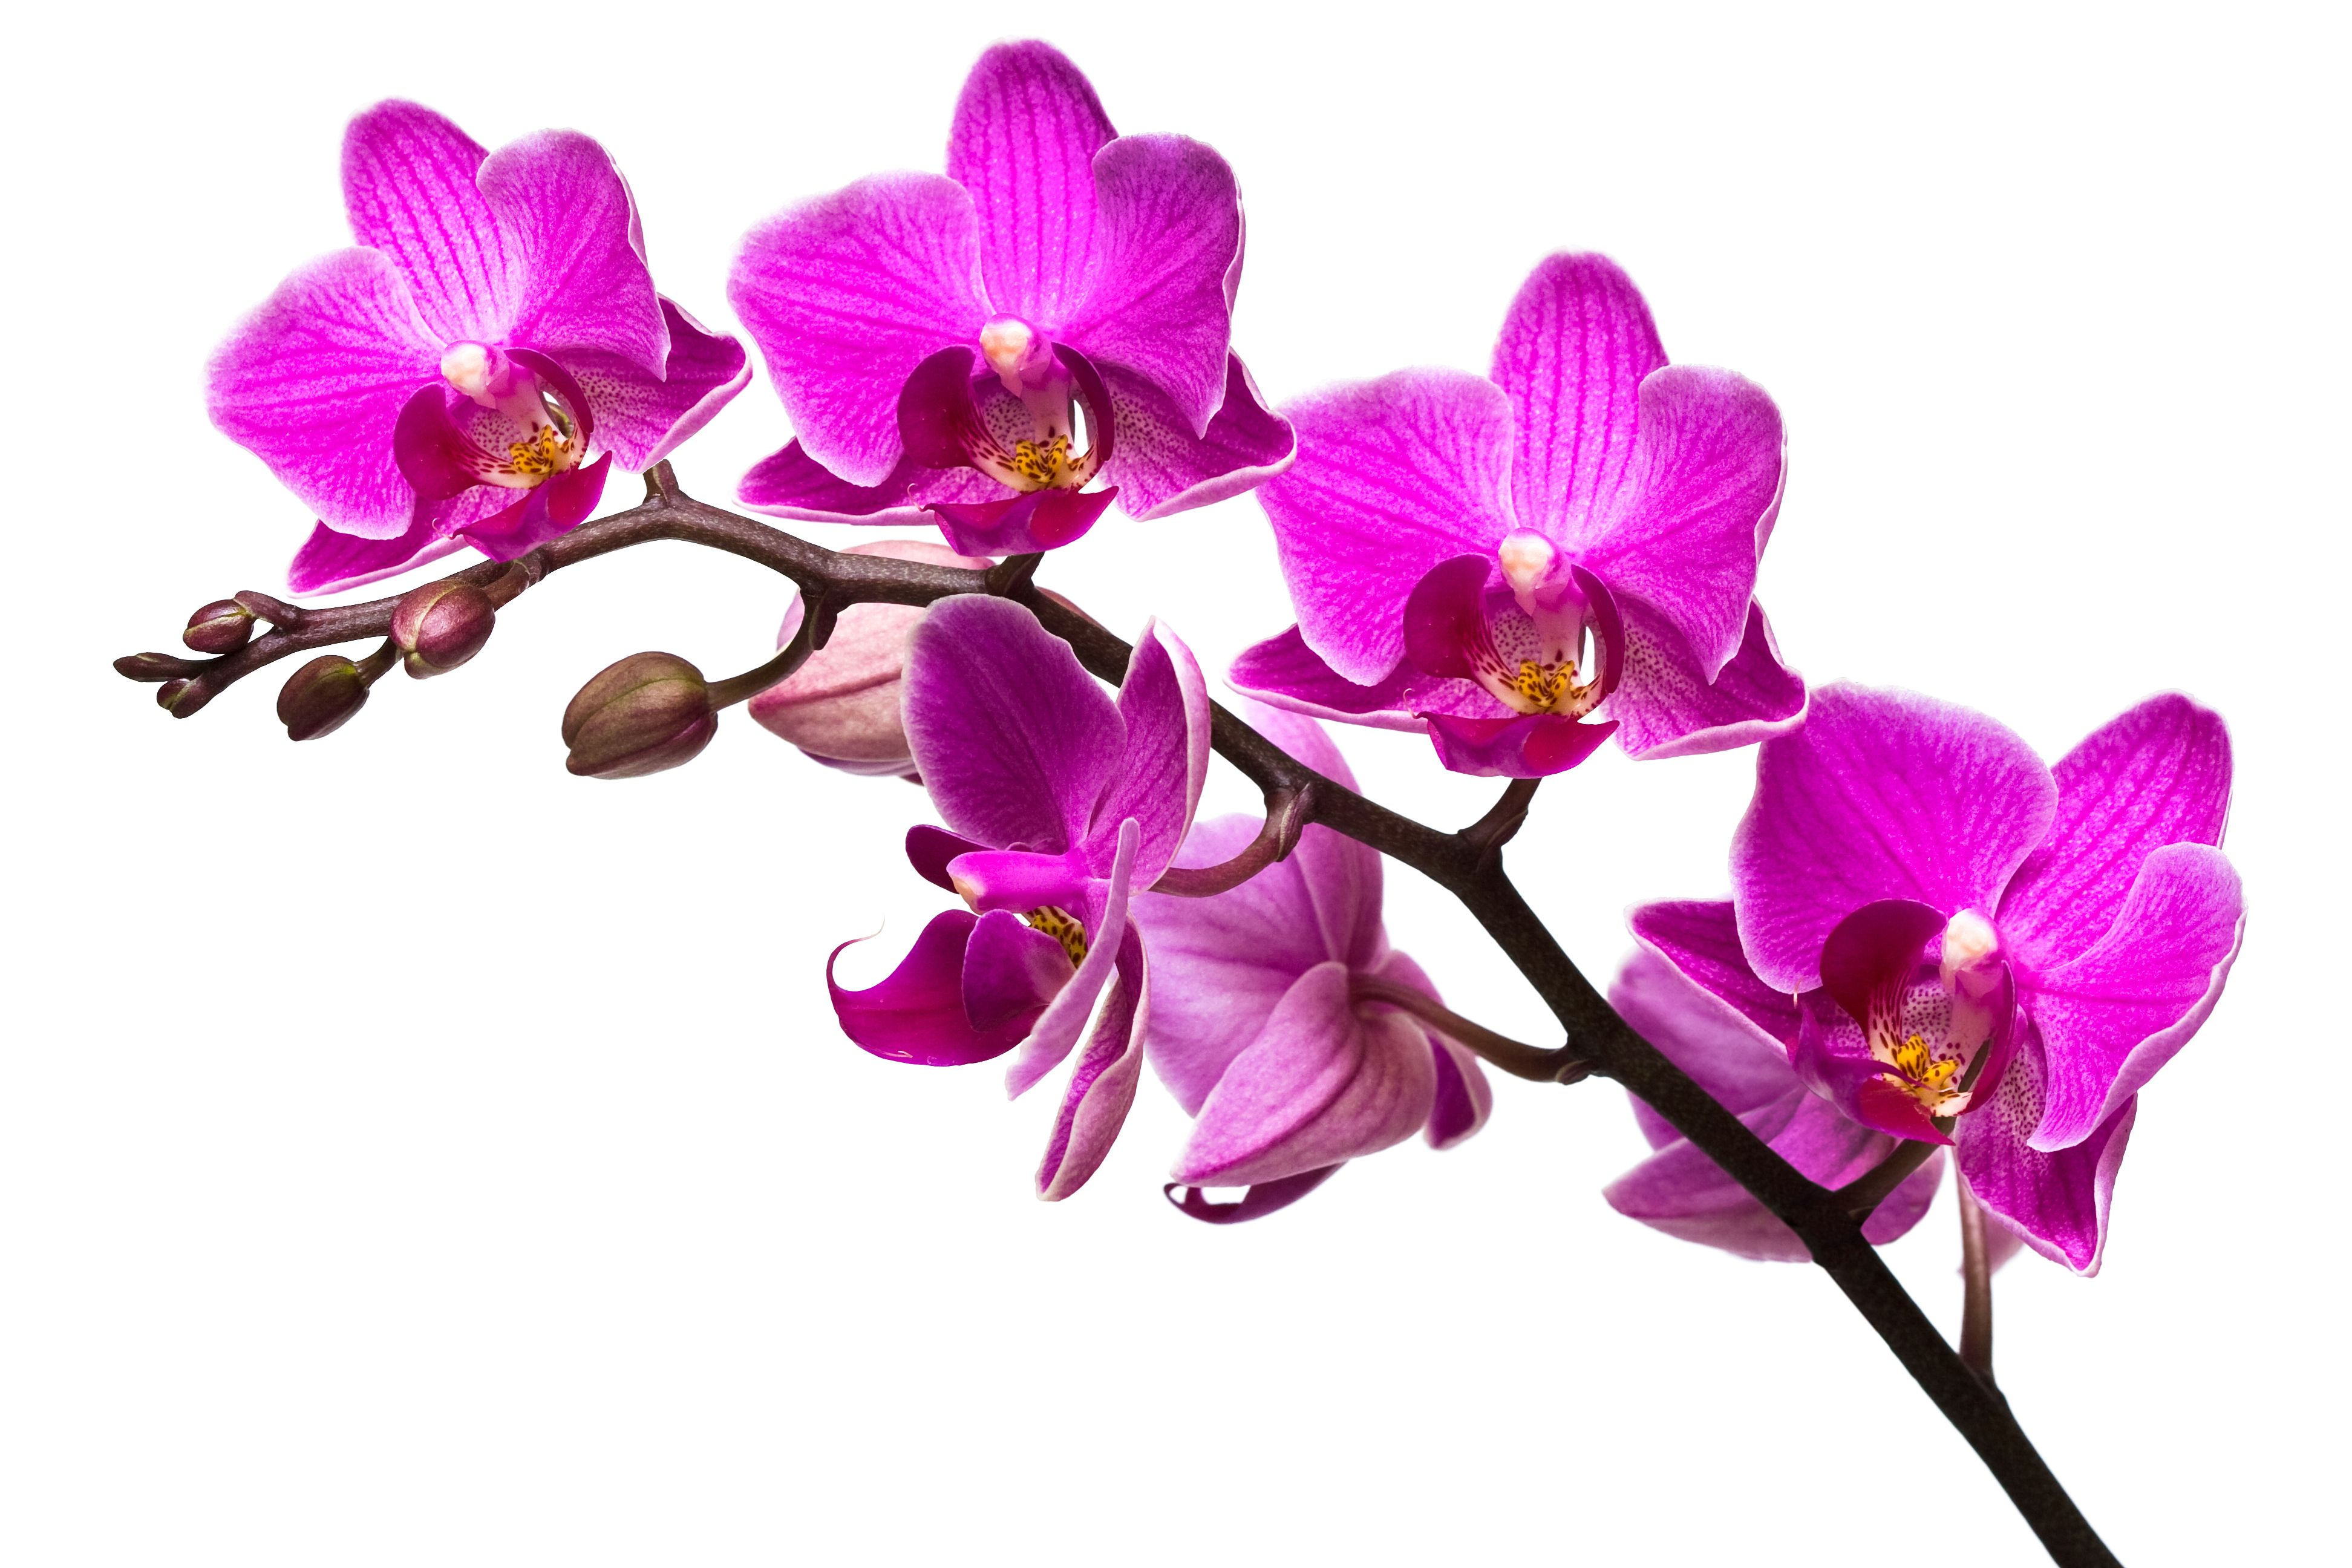 Pin By Kagome On Natura Pinterest Orchids Flowers And Purple